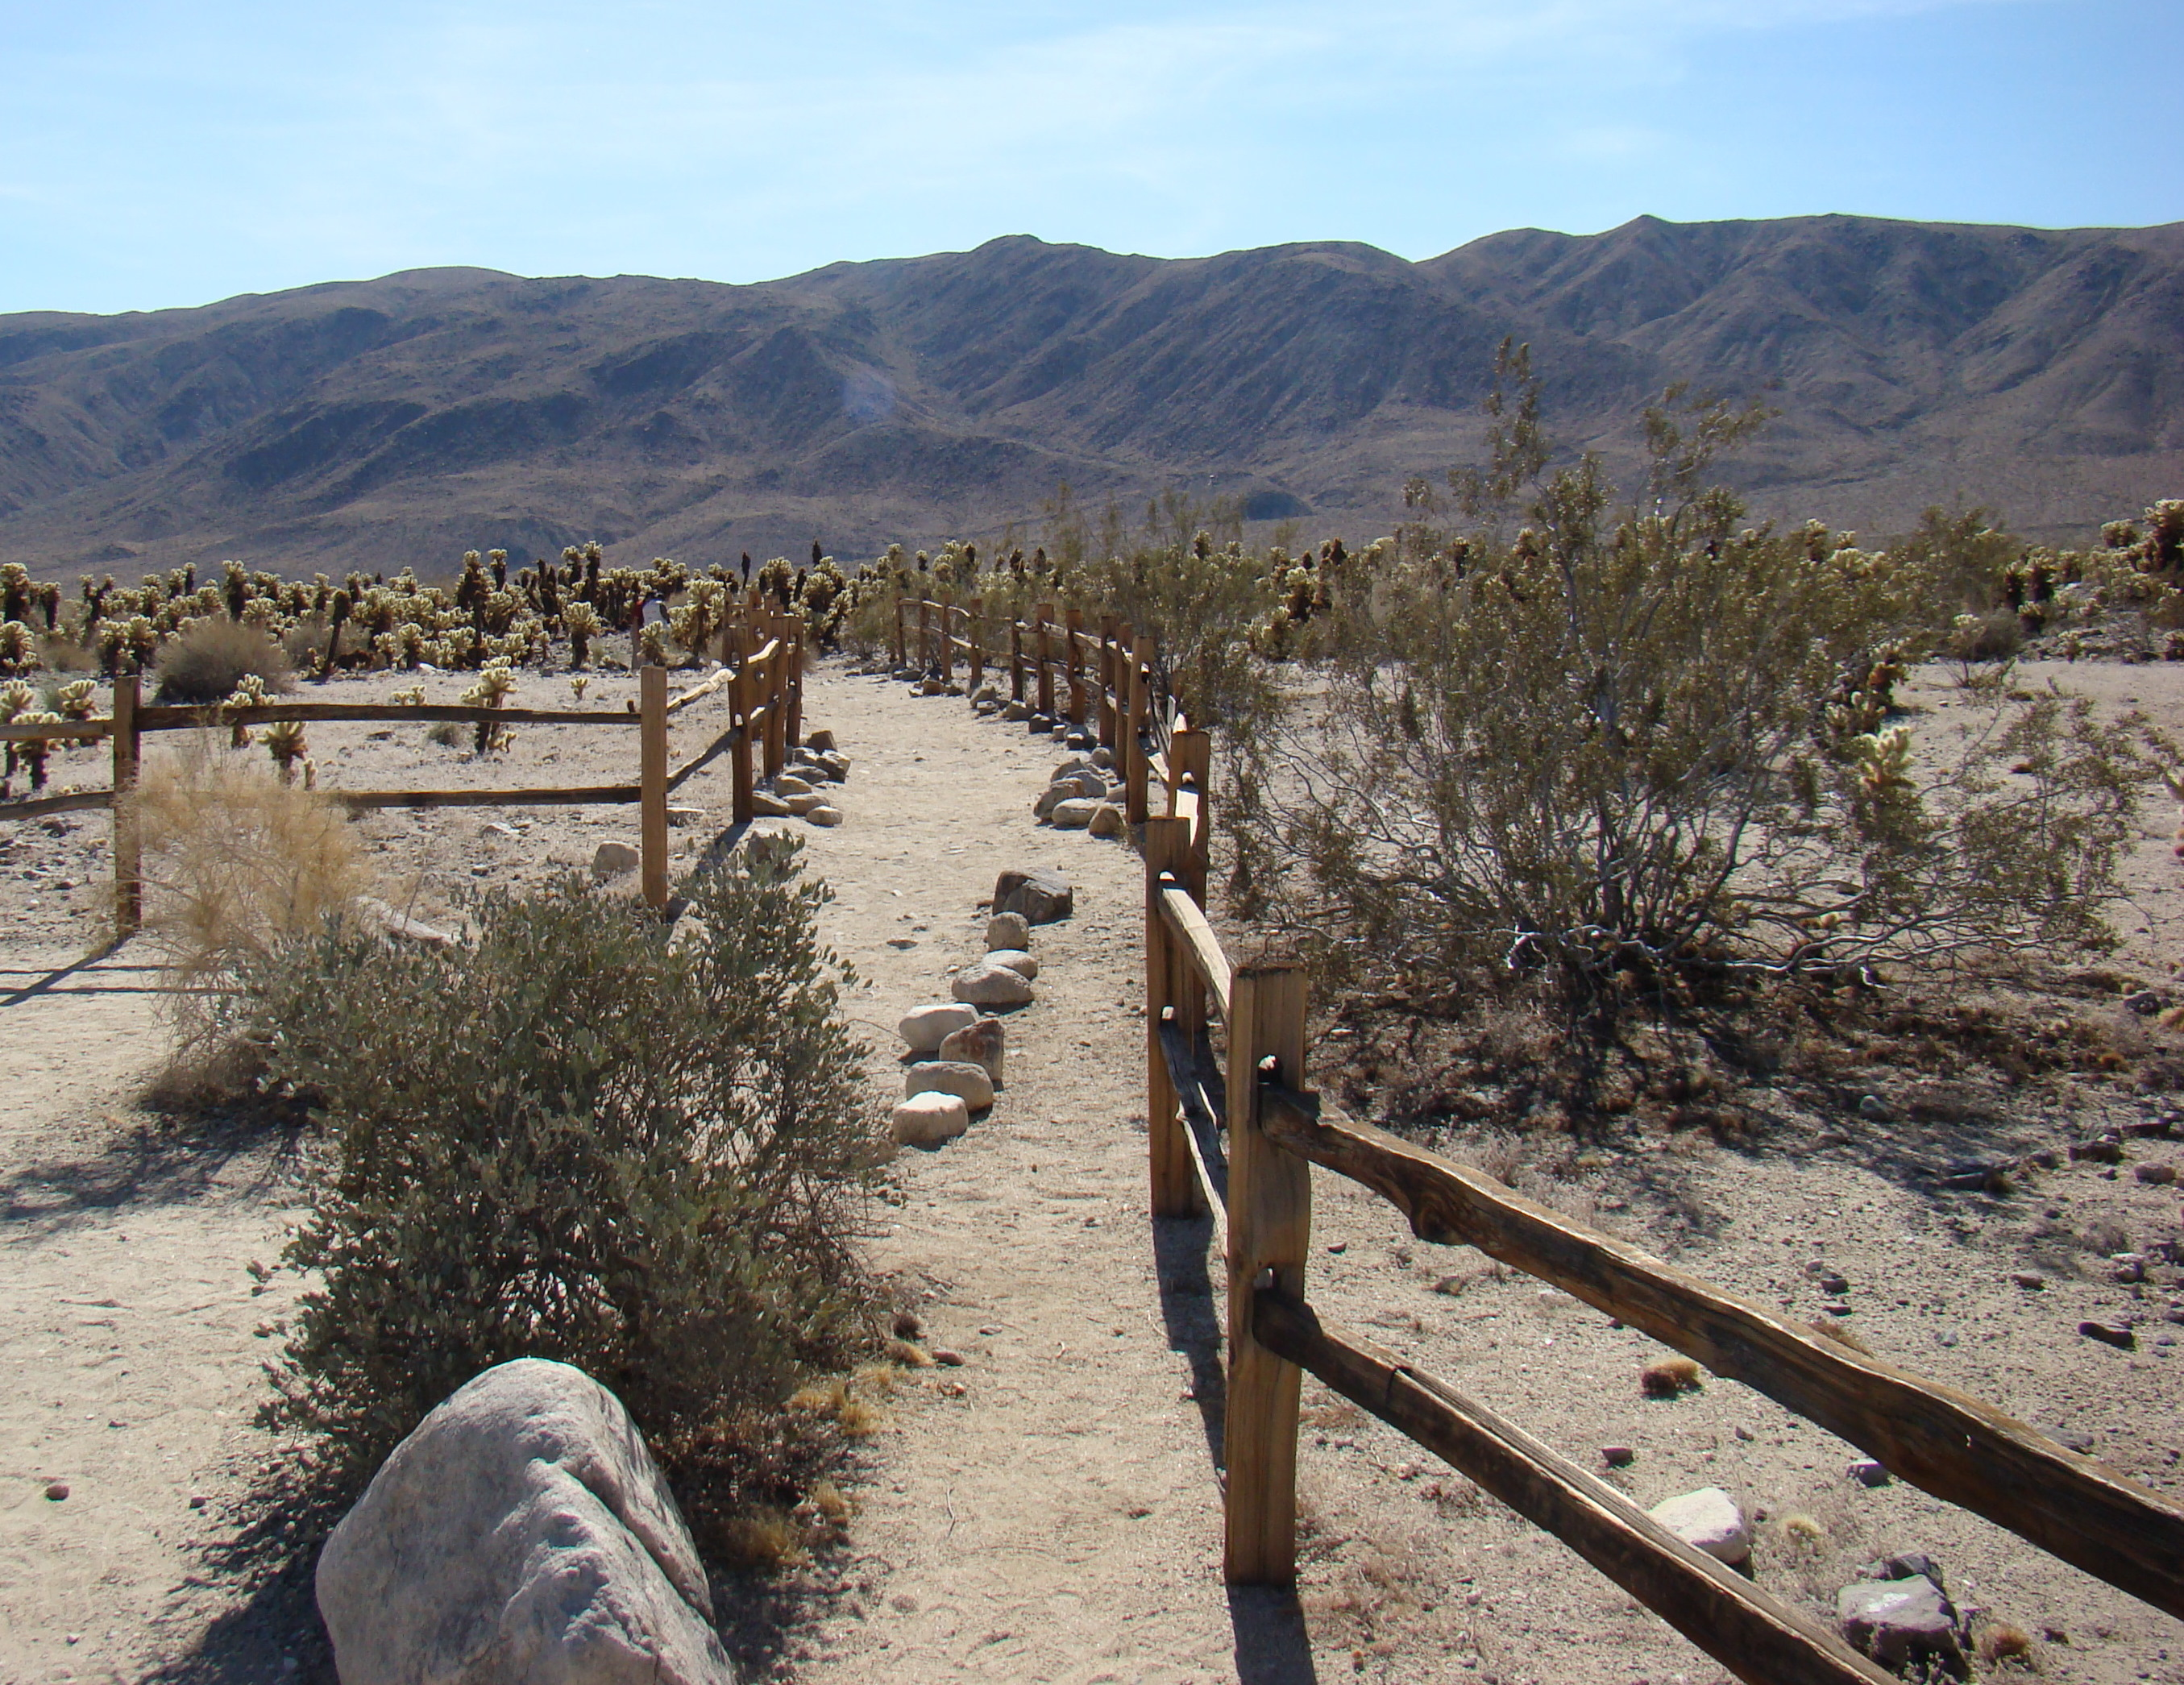 FileCholla Cactus Garden Nature Trail Joshua Tree National ParkJPG Wikimedia Commons